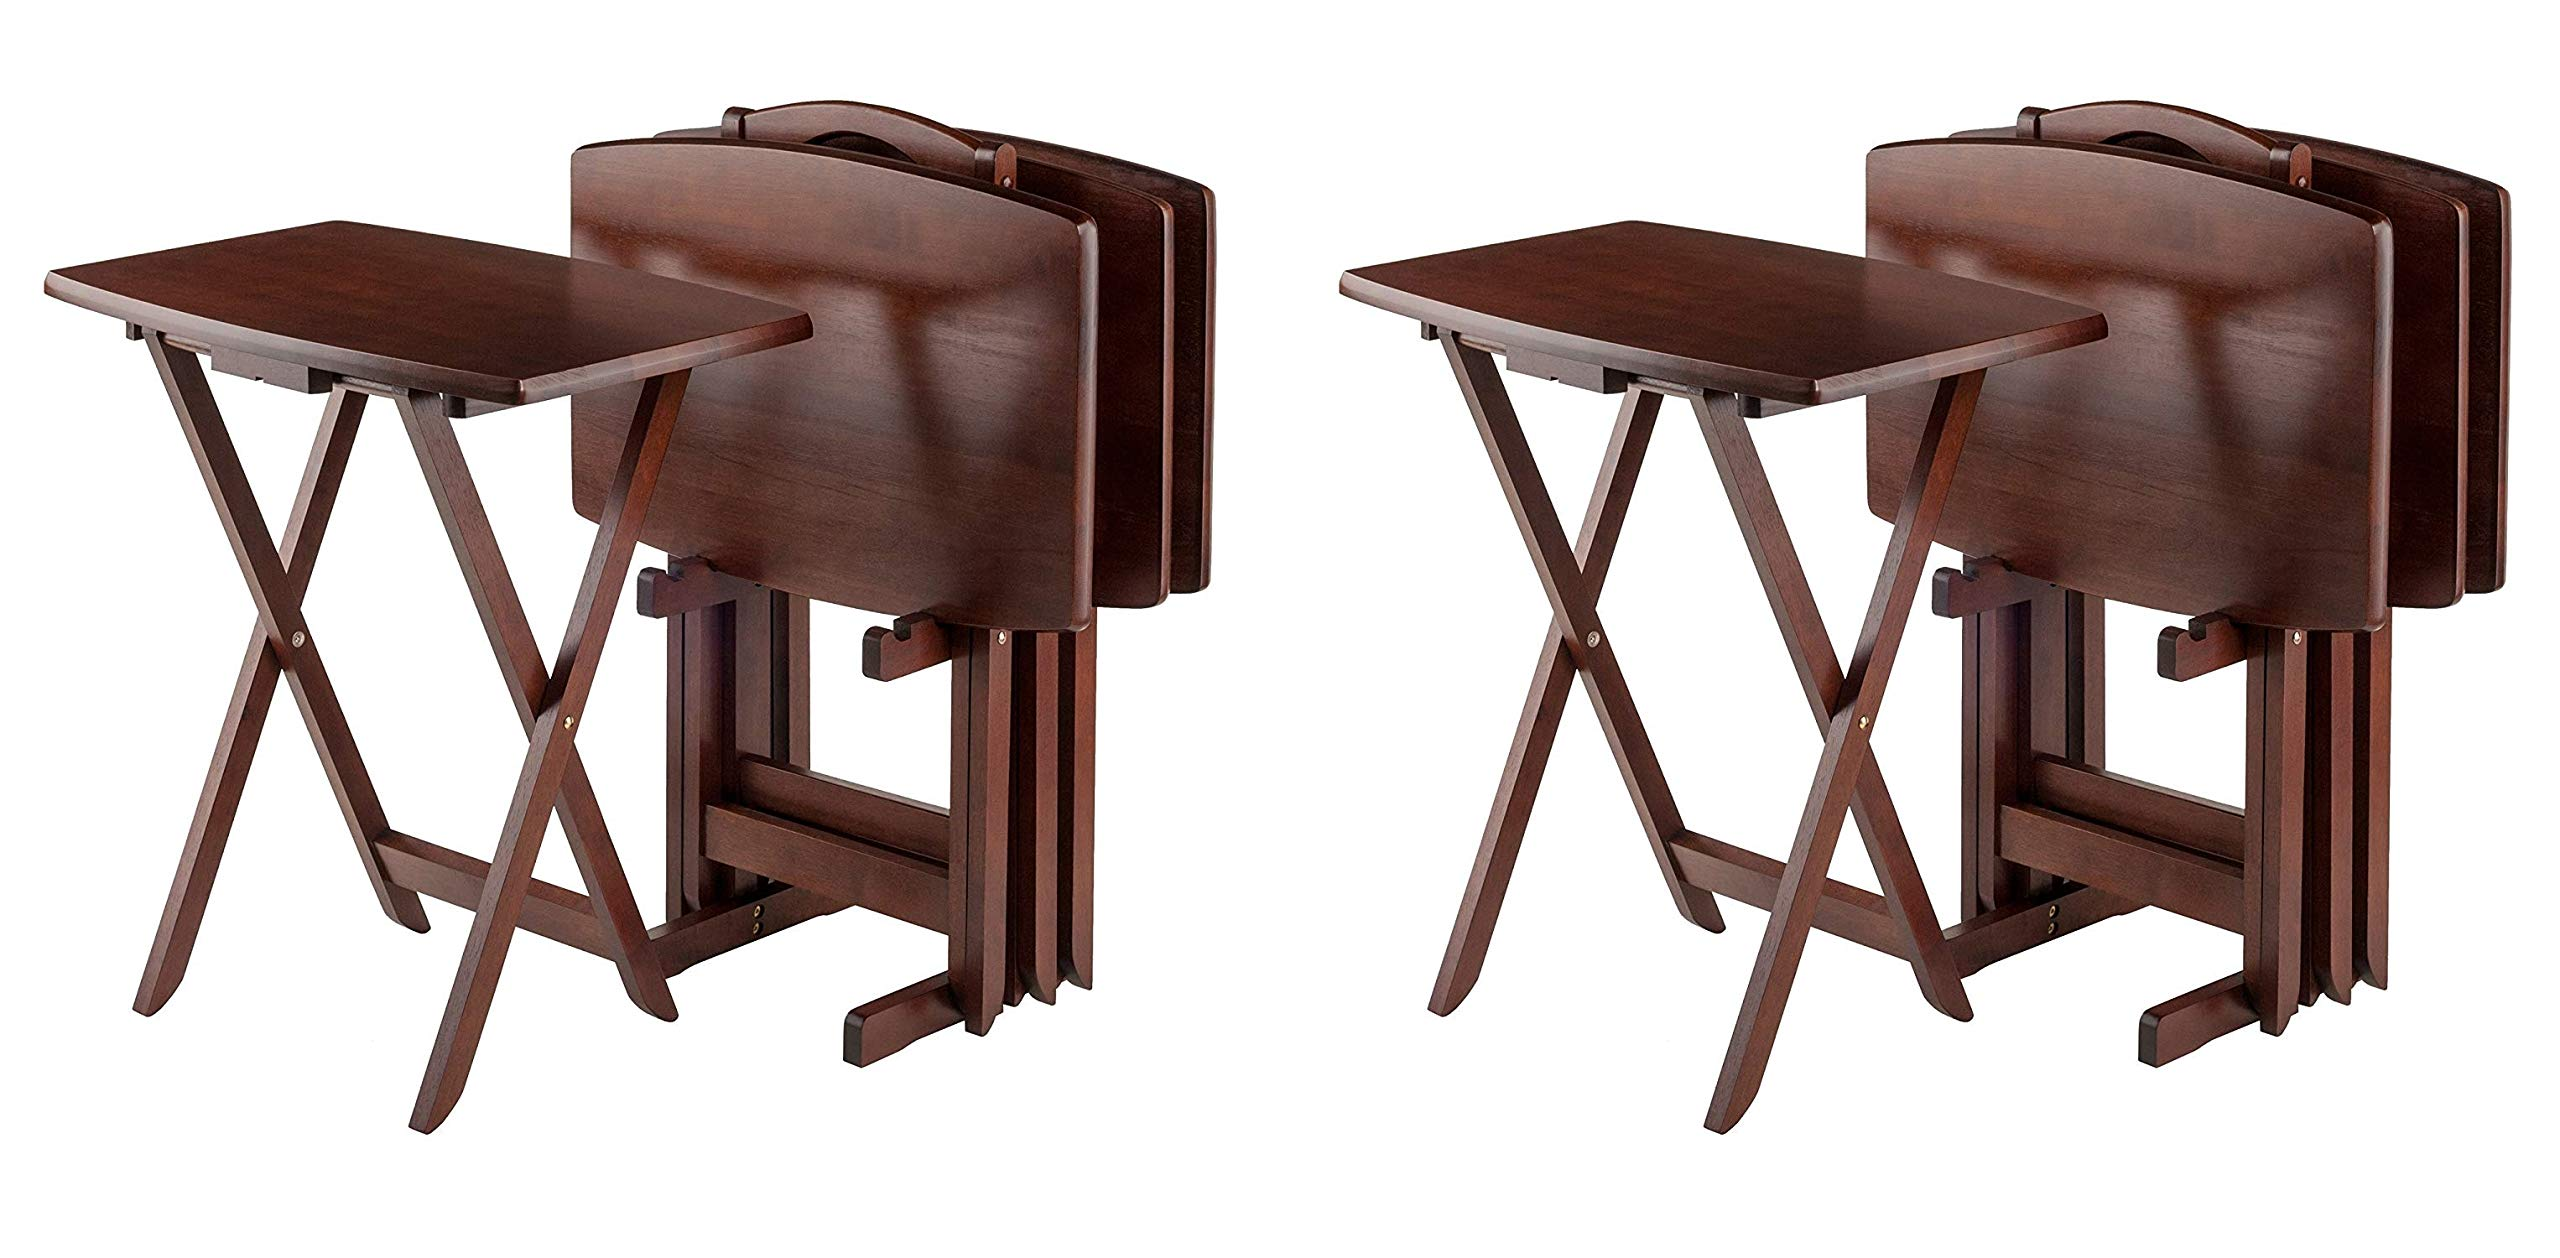 Winsome Oversize Snack Table Set, Walnut (Pack of 2) by Winsome Wood